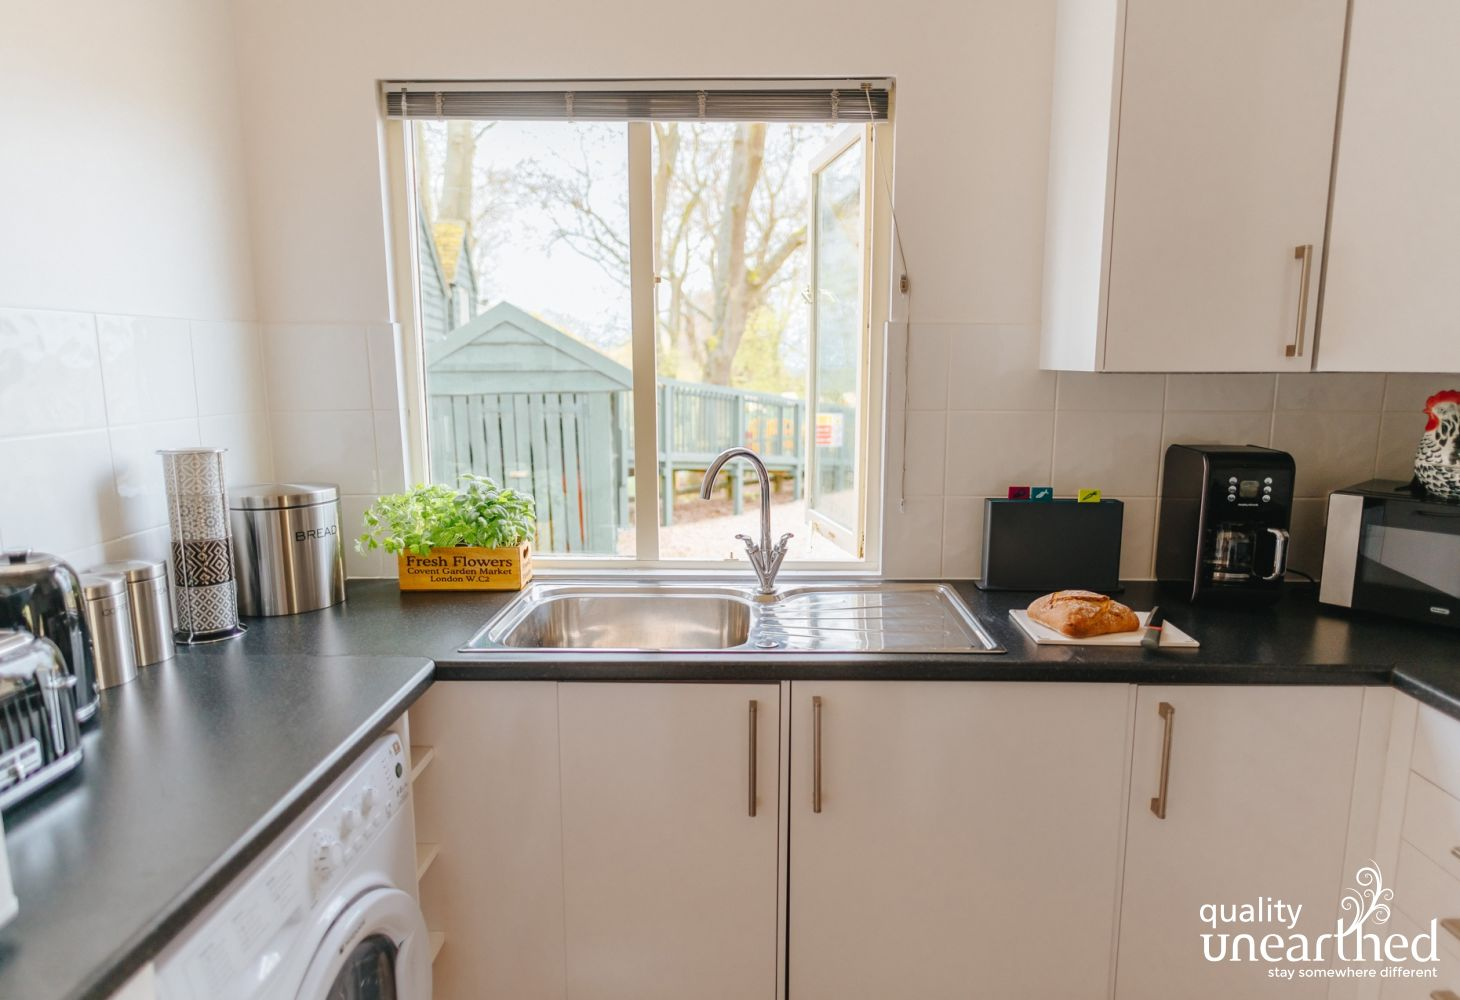 The fitted modern kitchen has all a family of 5 could need on a glamping holiday